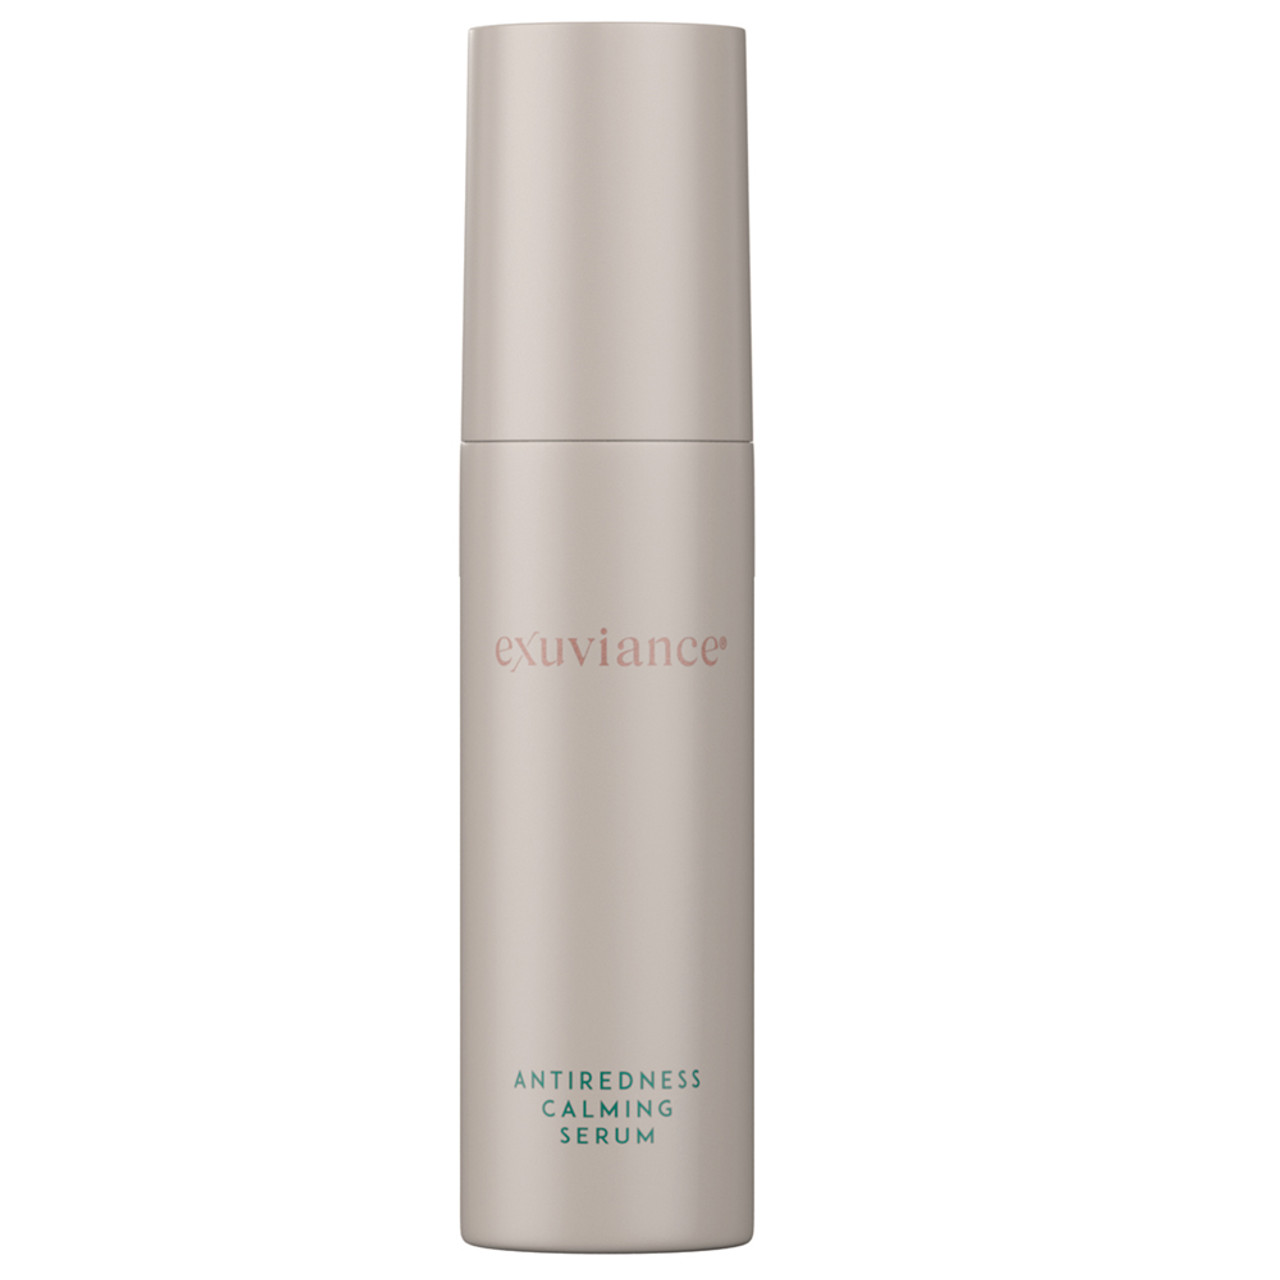 Exuviance AntiRedness Calming Serum